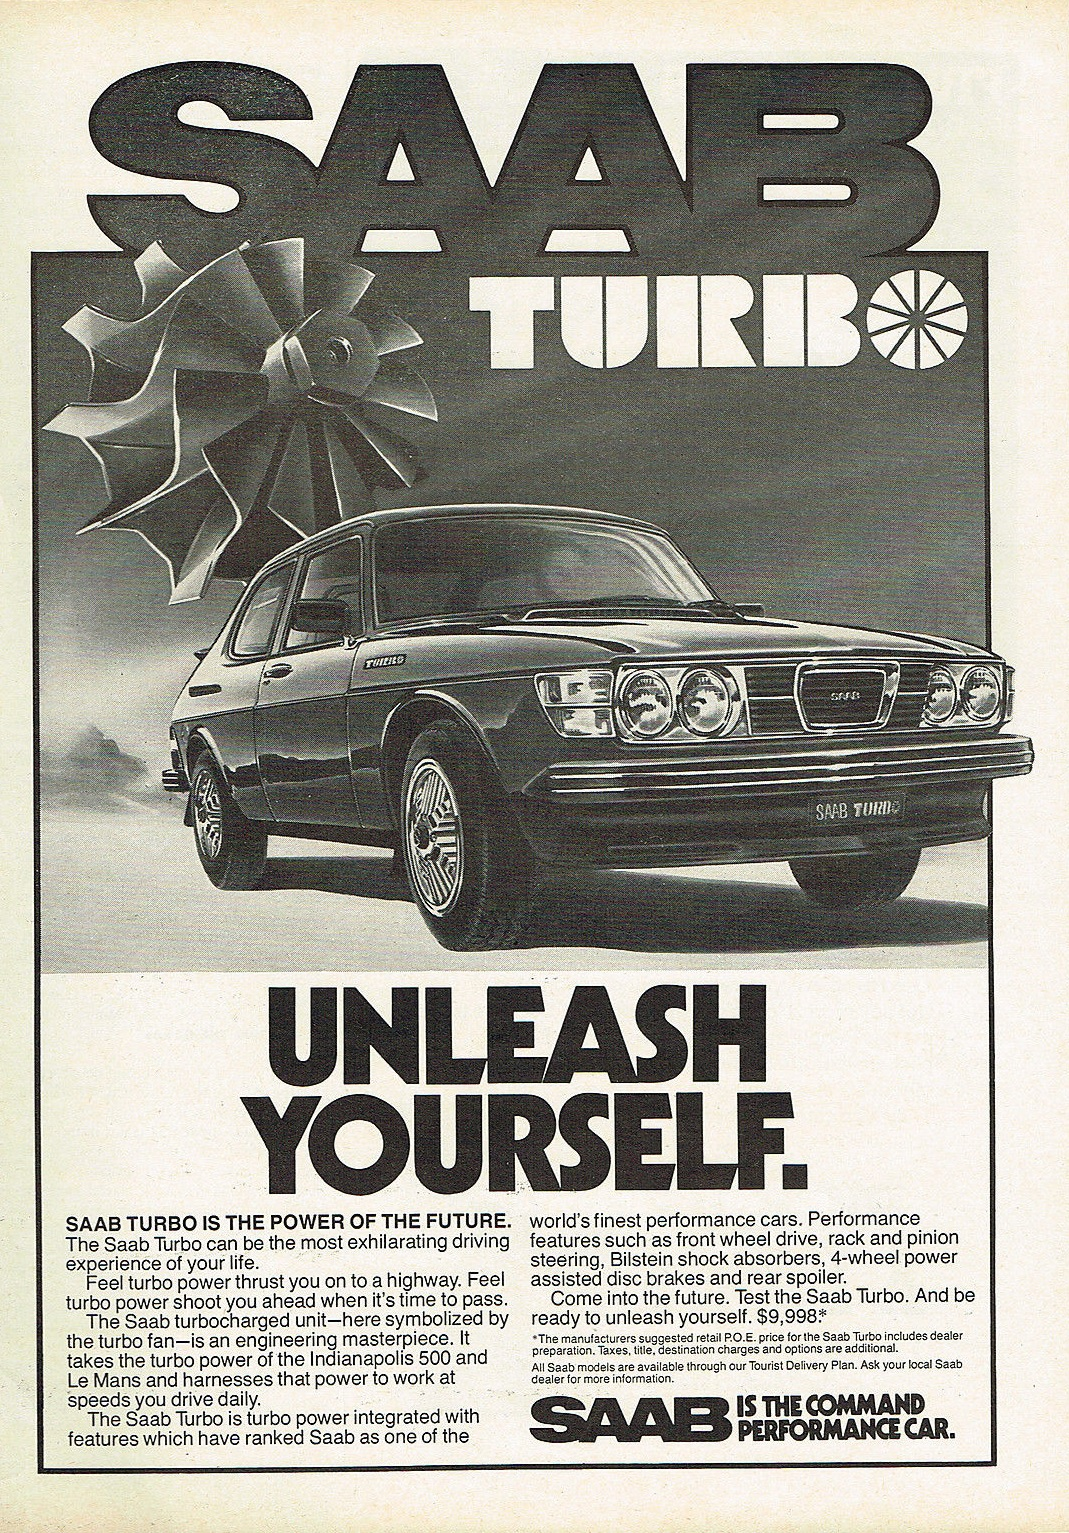 Saab 99 Turbo Unleash Yourself